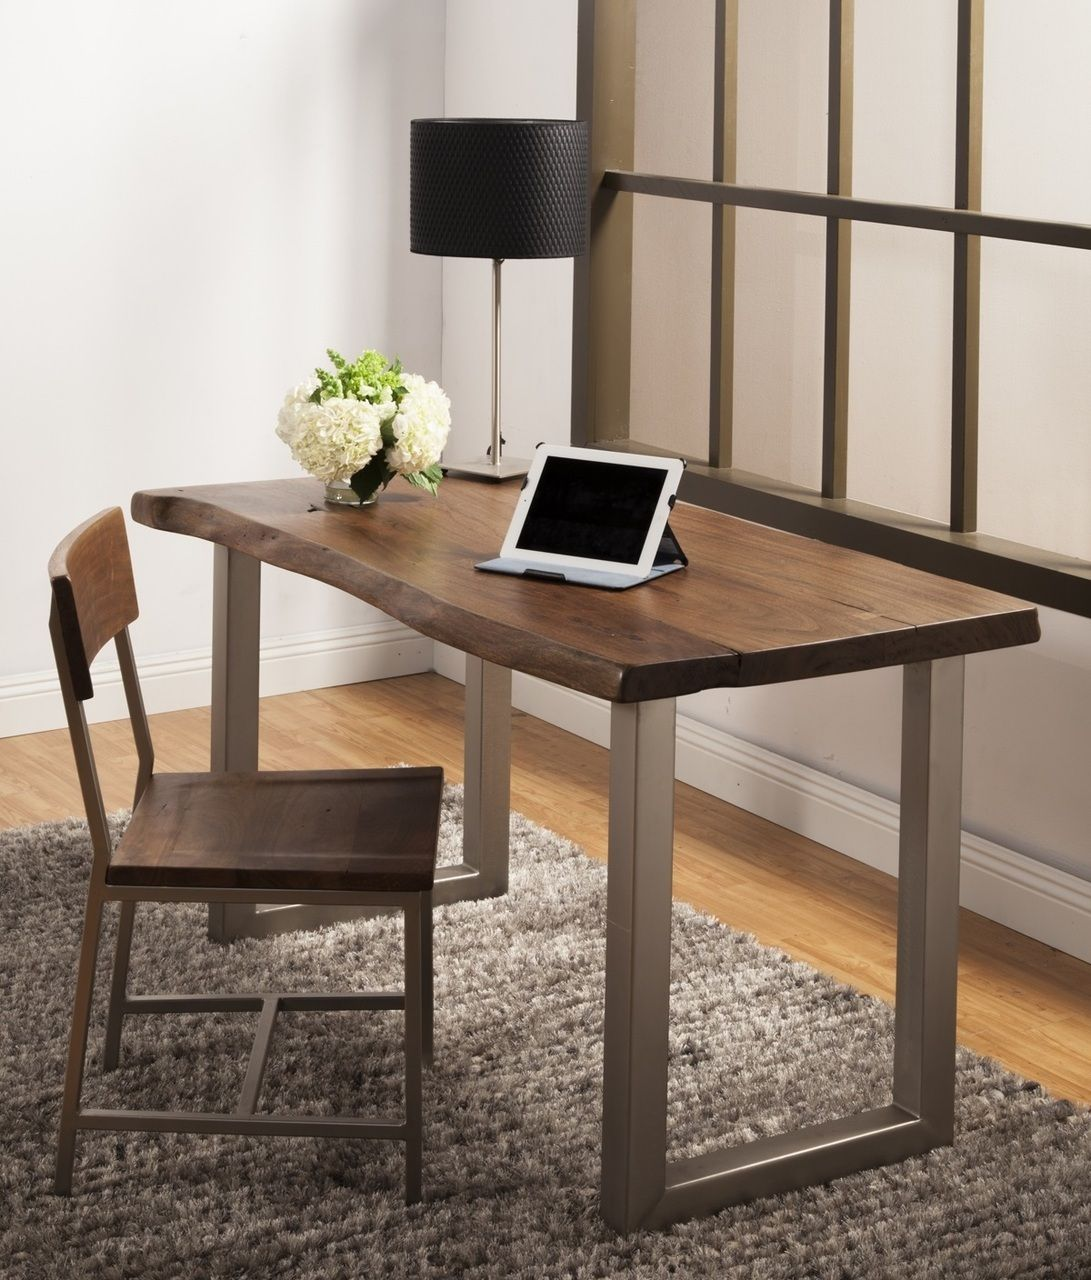 Montana Solid Wood Metal Leg Desk Industrial Design Furniture